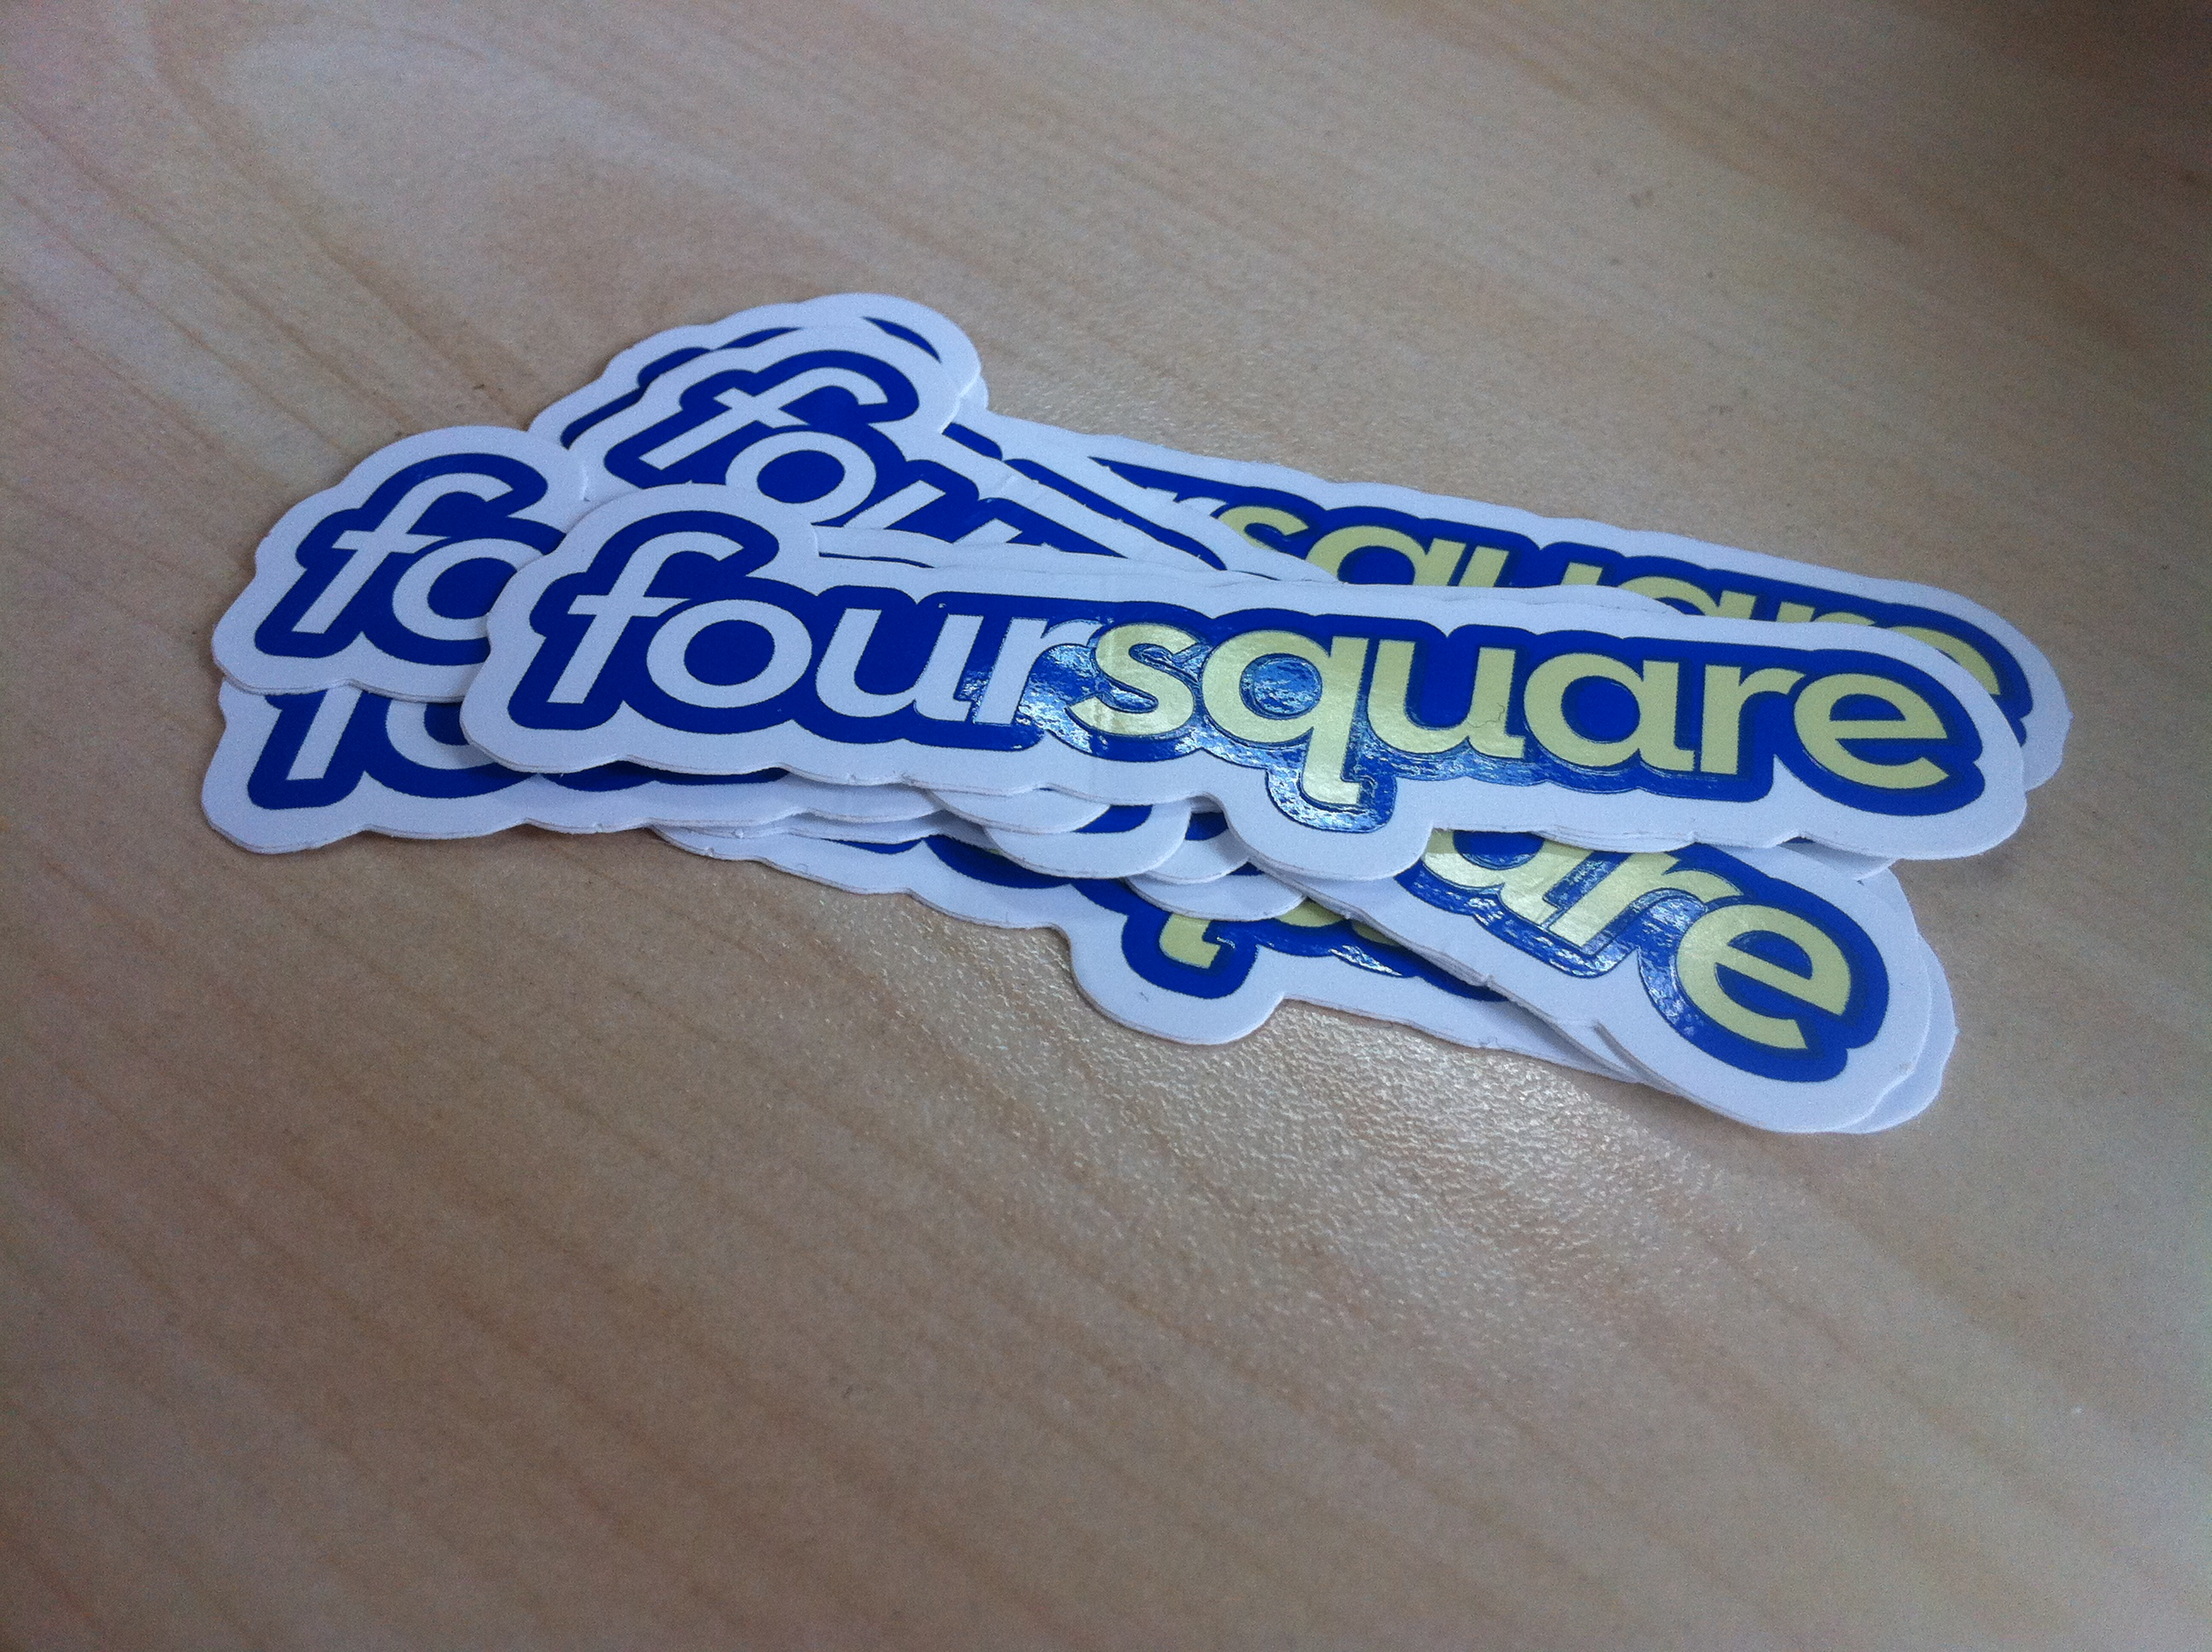 Foursquare Cofounder Naveen Selvadurai Opens Up About His Exit: